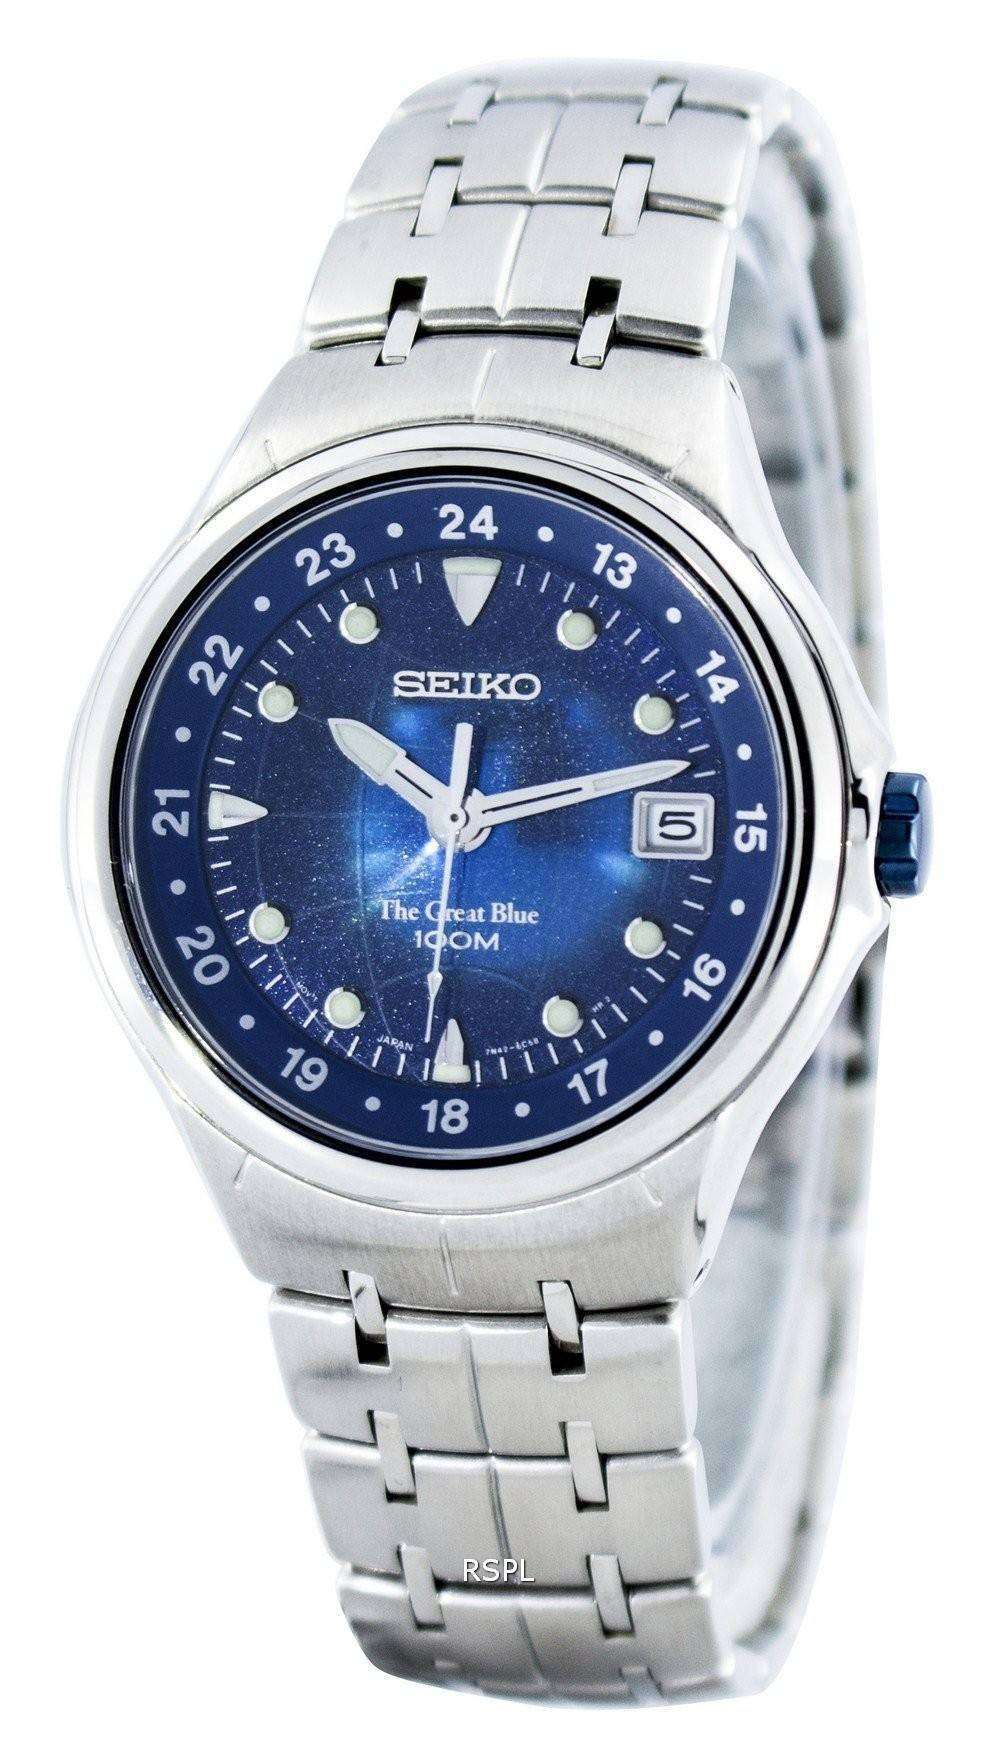 Seiko The Great Blue Quartz Sge487 Sge487p1 Sge487p Men S